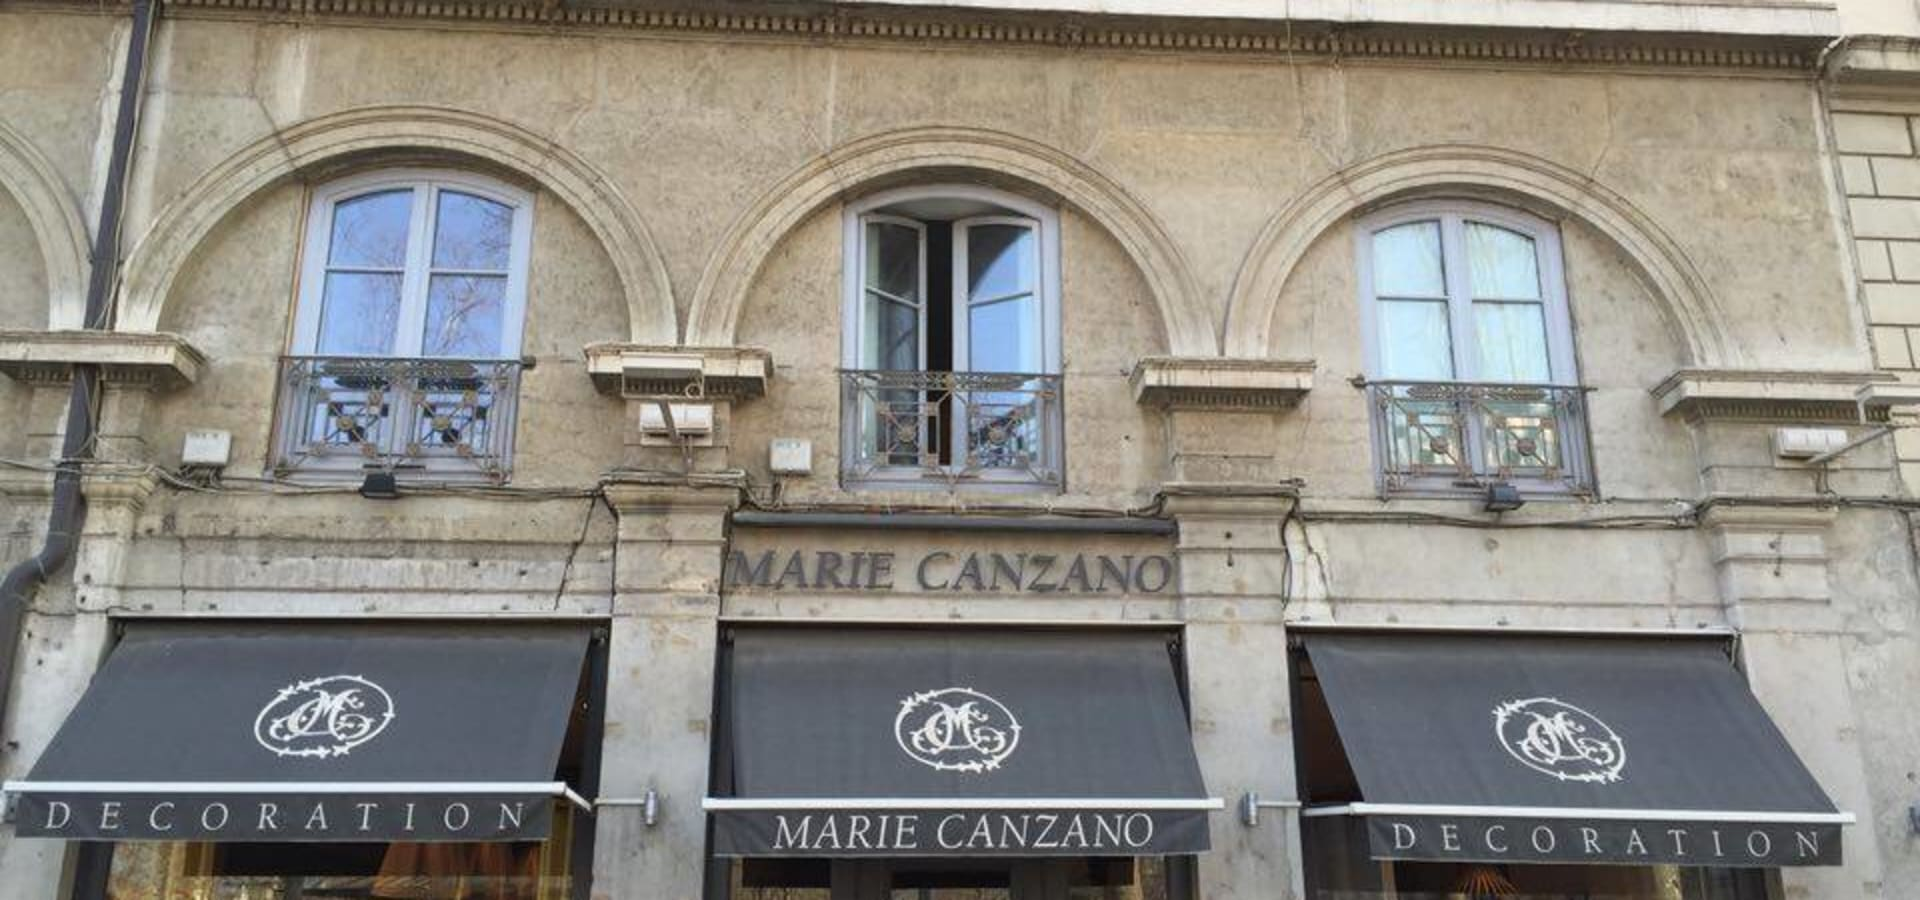 Marie Canzano Décoration